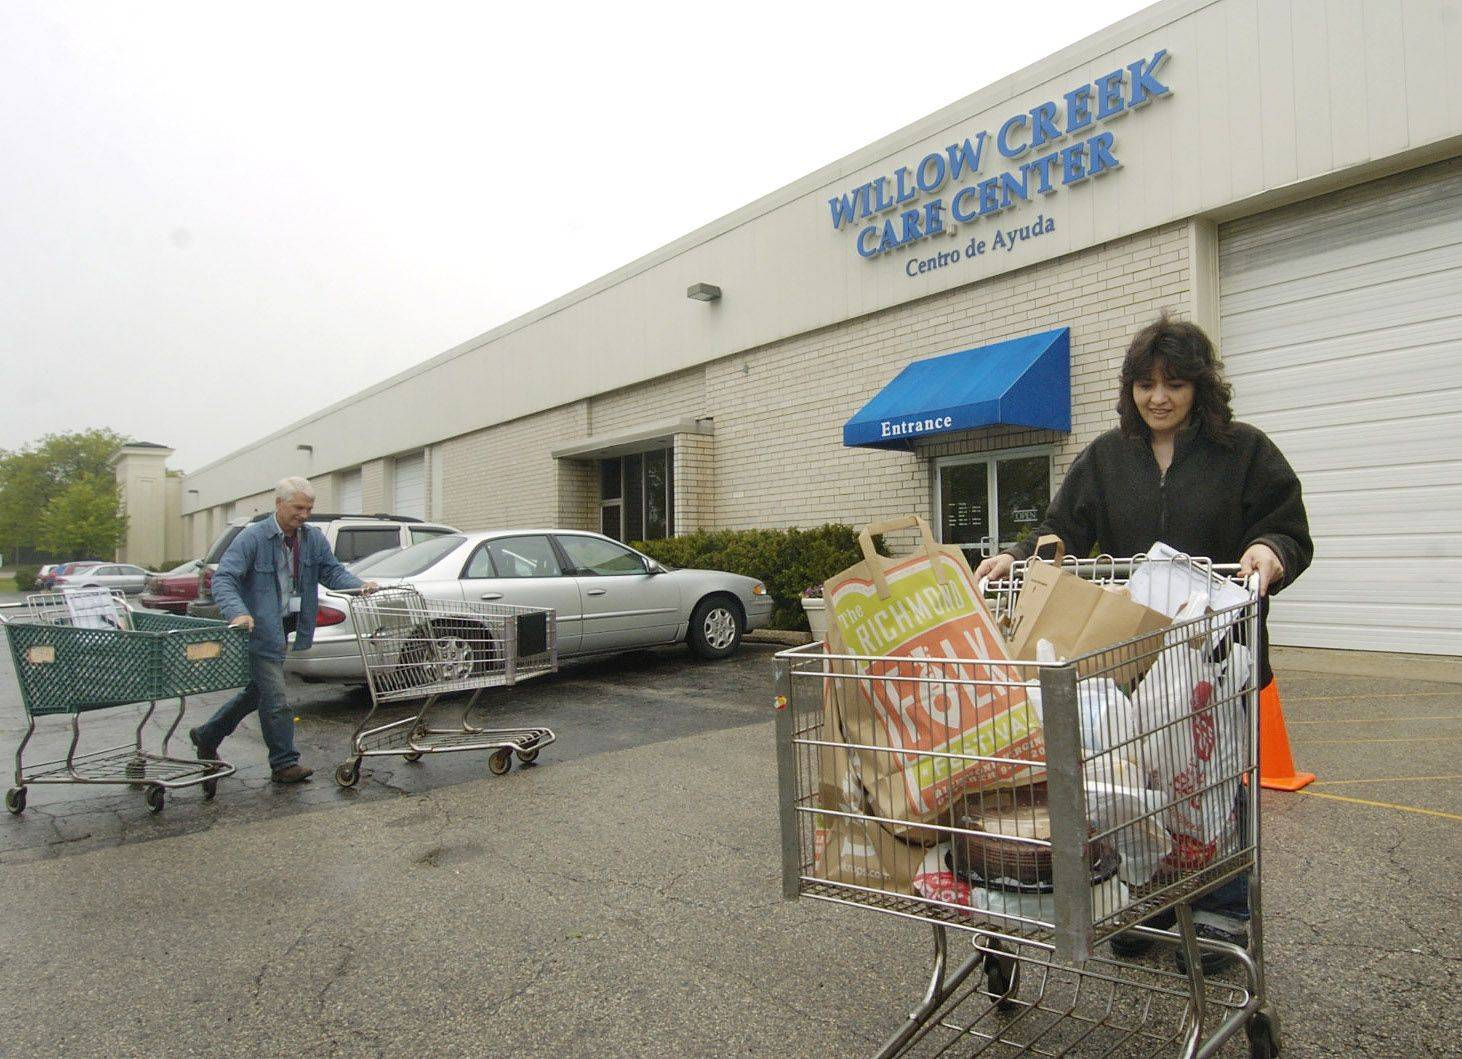 Volunteer Maribel Castaneda of Lake Zurich wheels out food for a client at the Willow Creek Care Center food pantry in Hoffman Estates in May 2010. The church is seeking permission to build a new Care Center on its main campus in South Barrington.